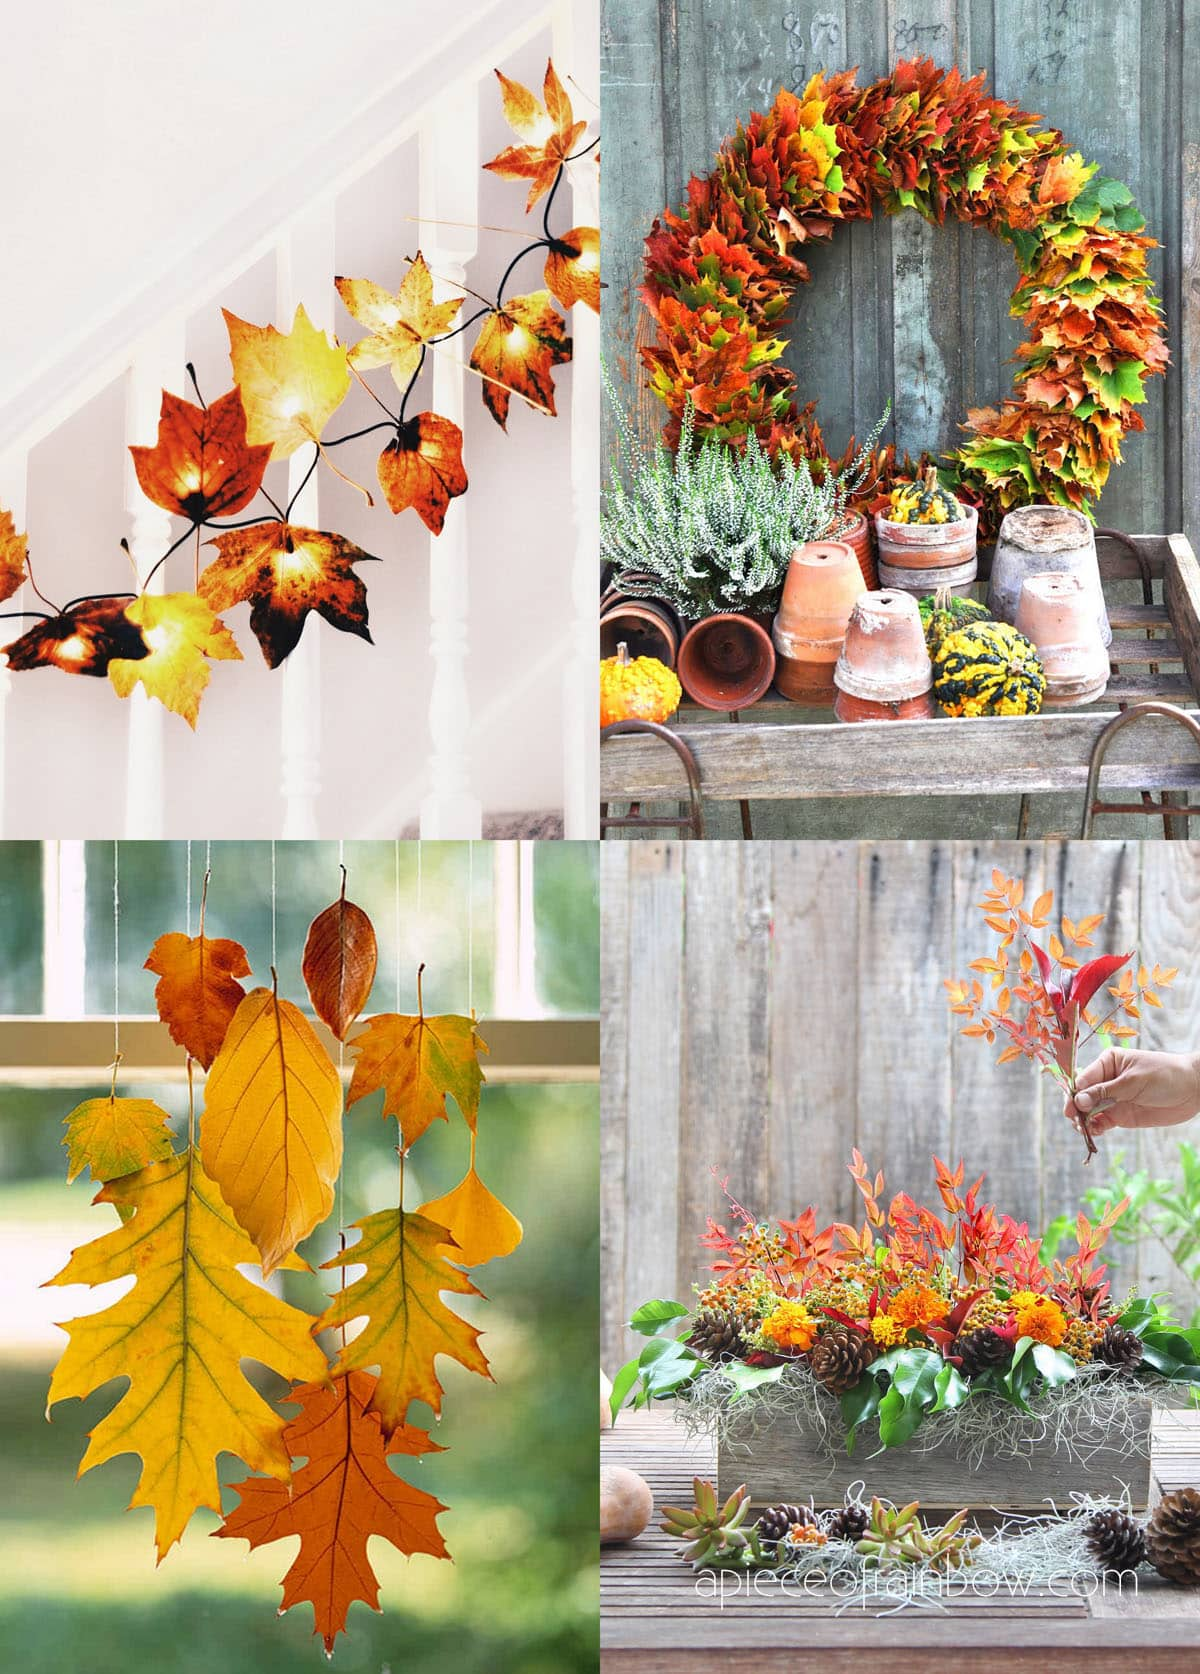 Gorgeous fall leaf crafts & easy DIY decor ideas such as colorful wreath, garland, kids art prints, Thanksgiving table centerpiece, etc